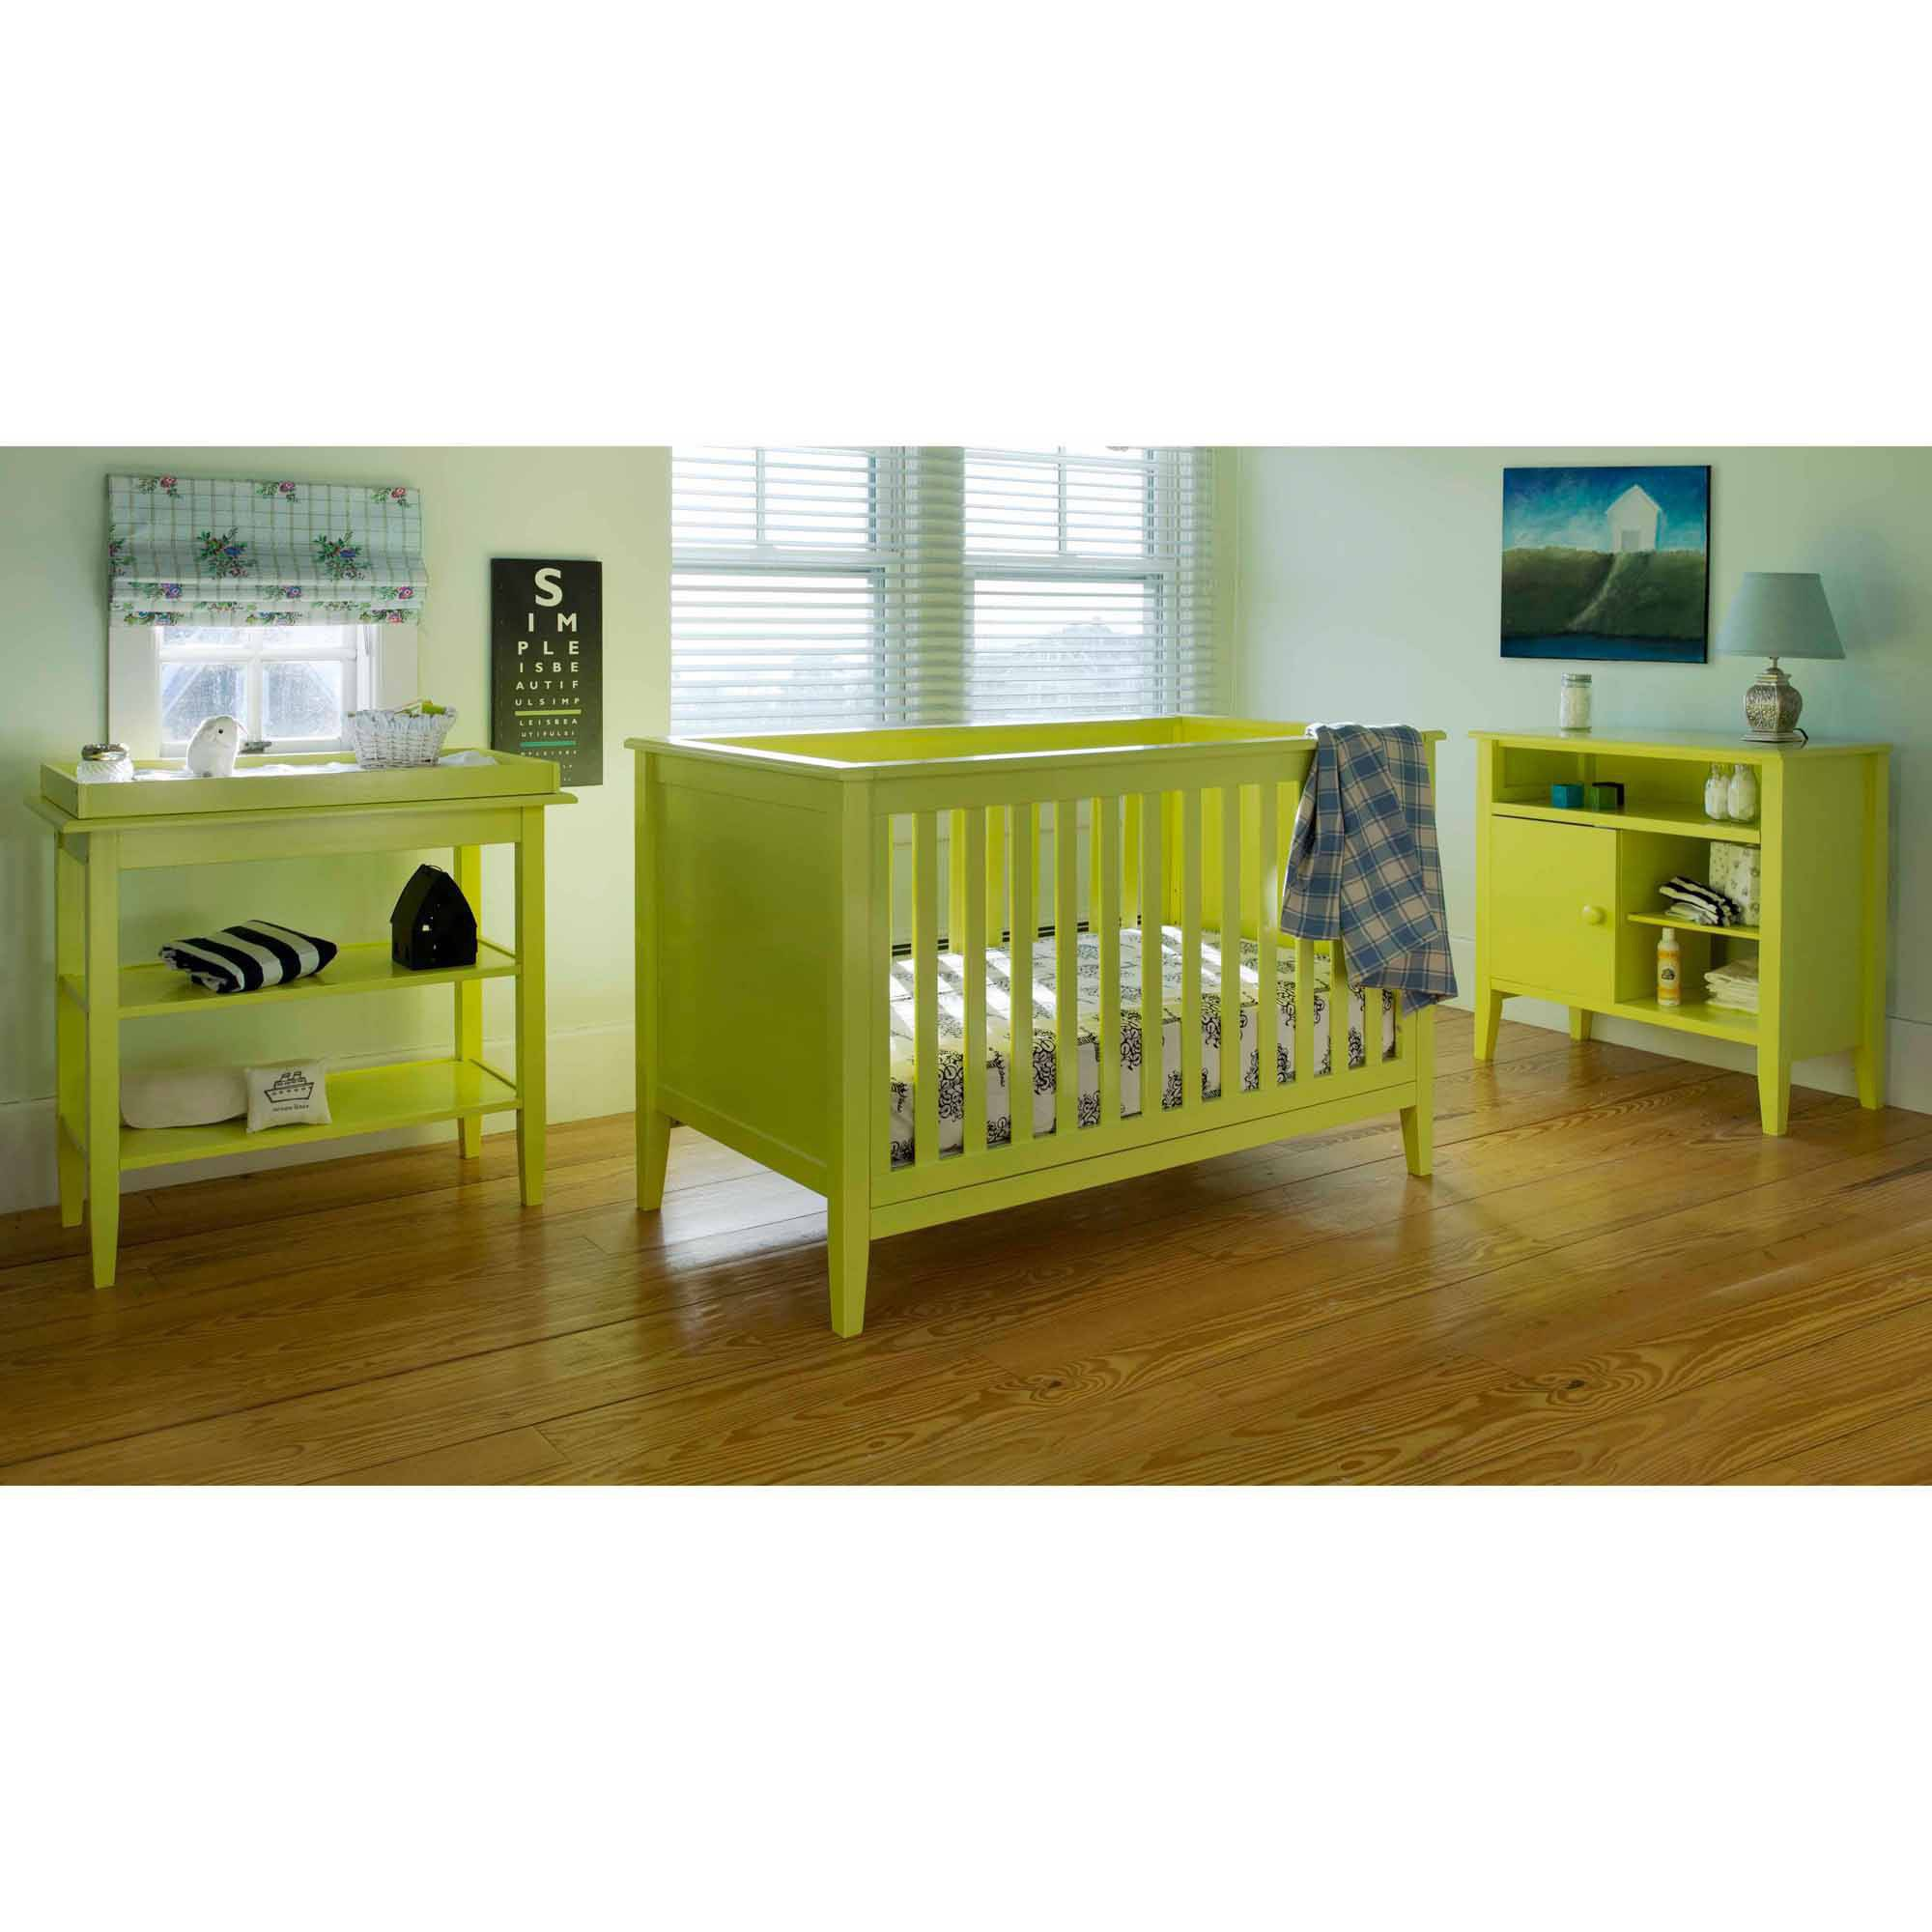 Lolly & Me Color Me 3-in-1 Convertible Crib Citron Yellow